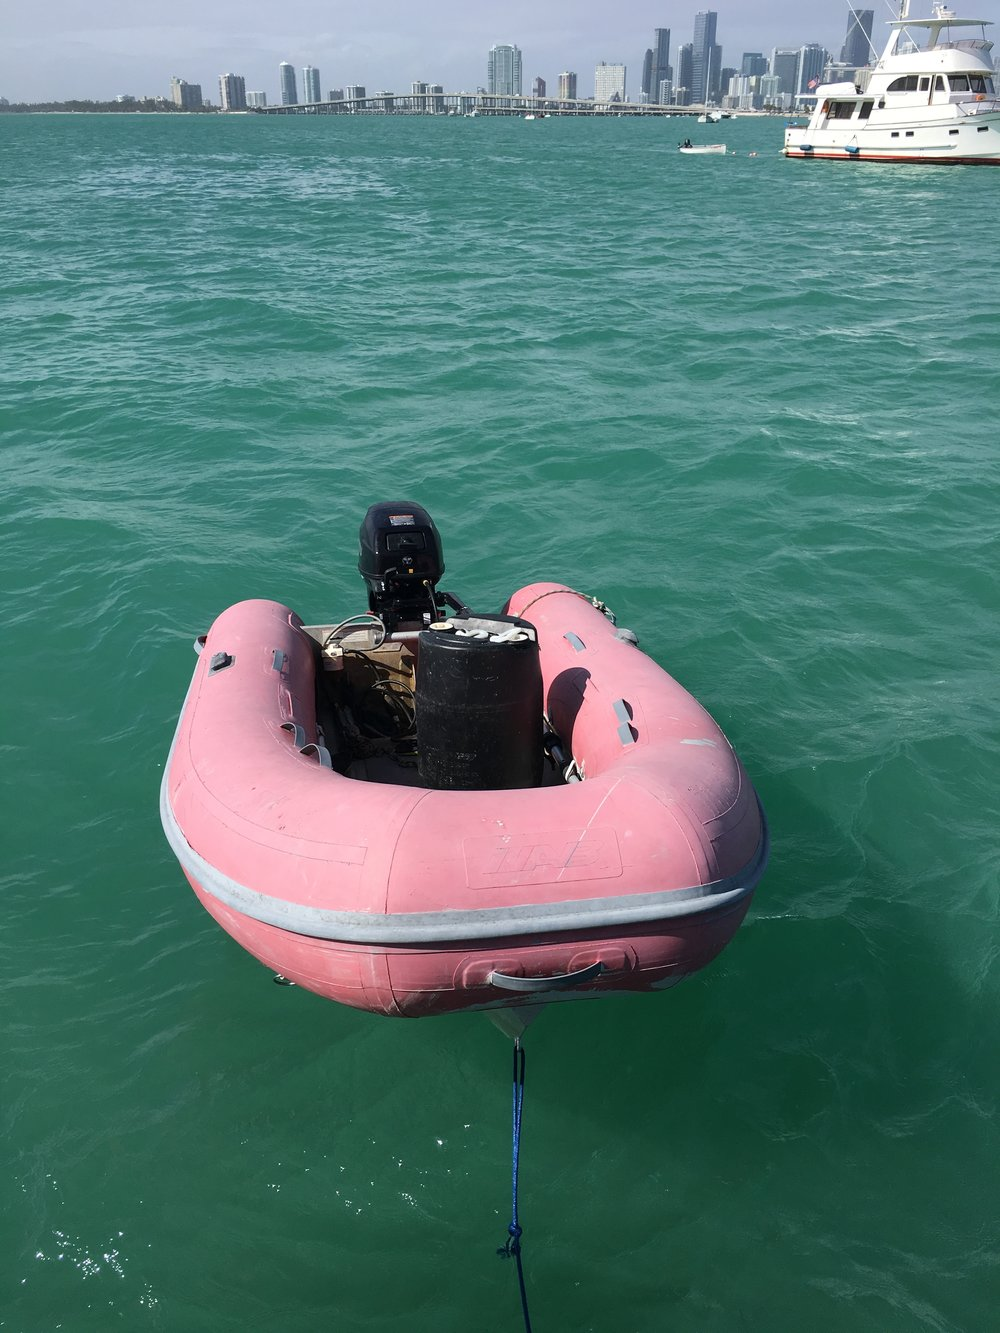 My dinghy with a tank to collect the excess fuel.